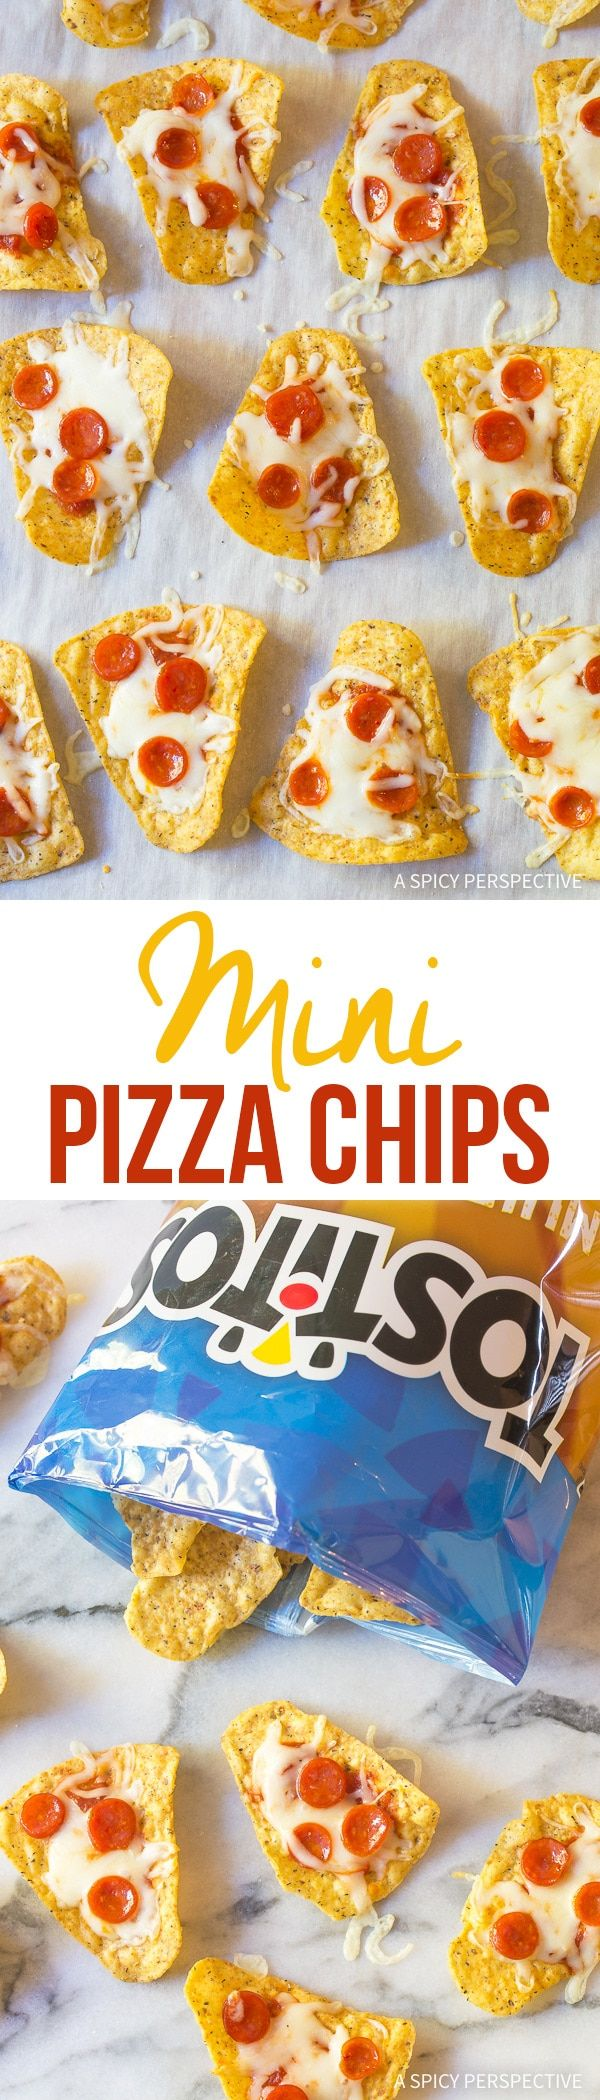 No one can resist pizza, right? Serve our 4-Ingredient Mini Pizza Chips at all your holiday parties this year! Made with @FritoLay Multigrain Tostitos! #mingleinabox #ad